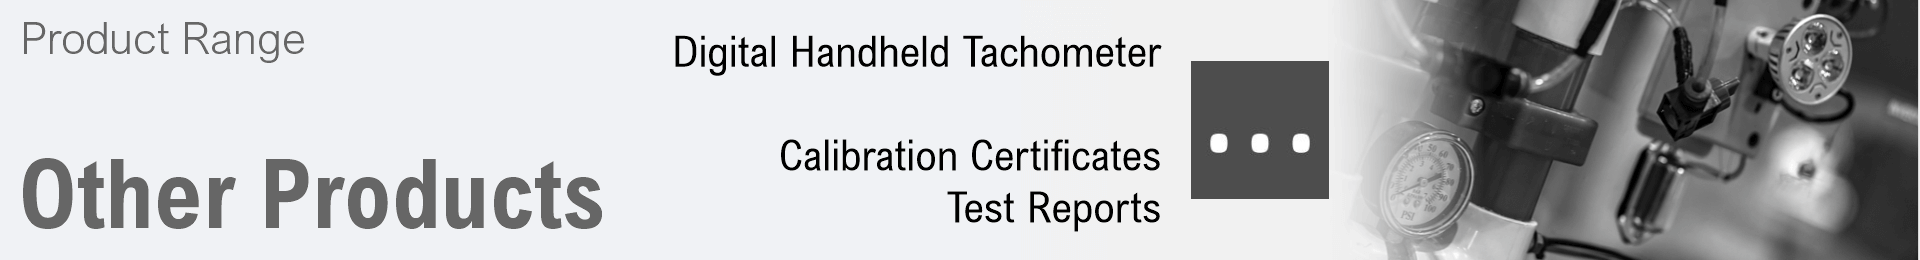 Product range: Other Products: Handheld Tachometer, Certificates, Test Reports